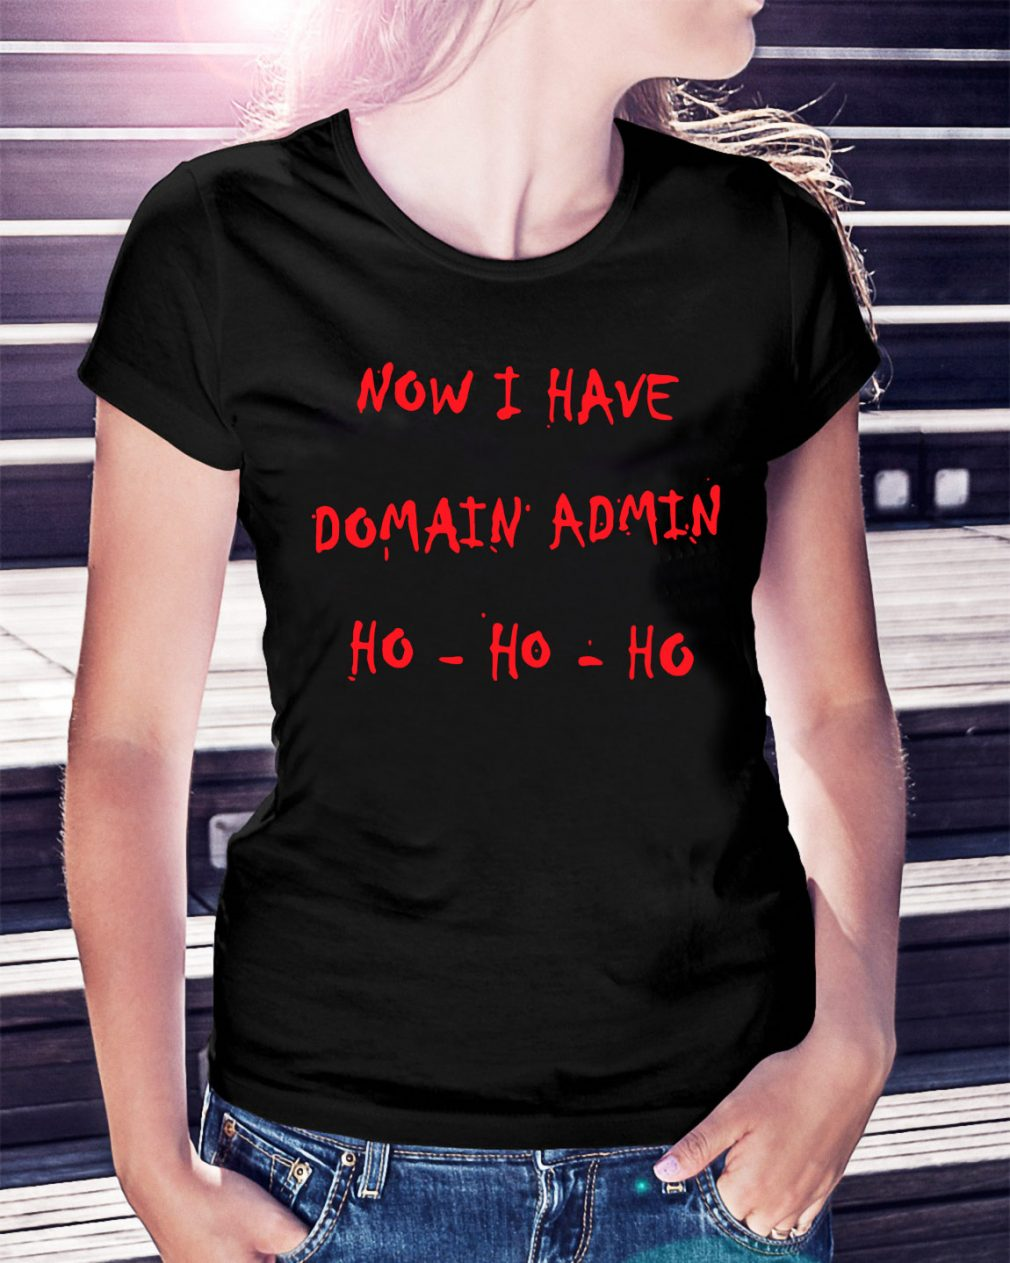 Now I have Domain admin Ho-ho-ho shirt